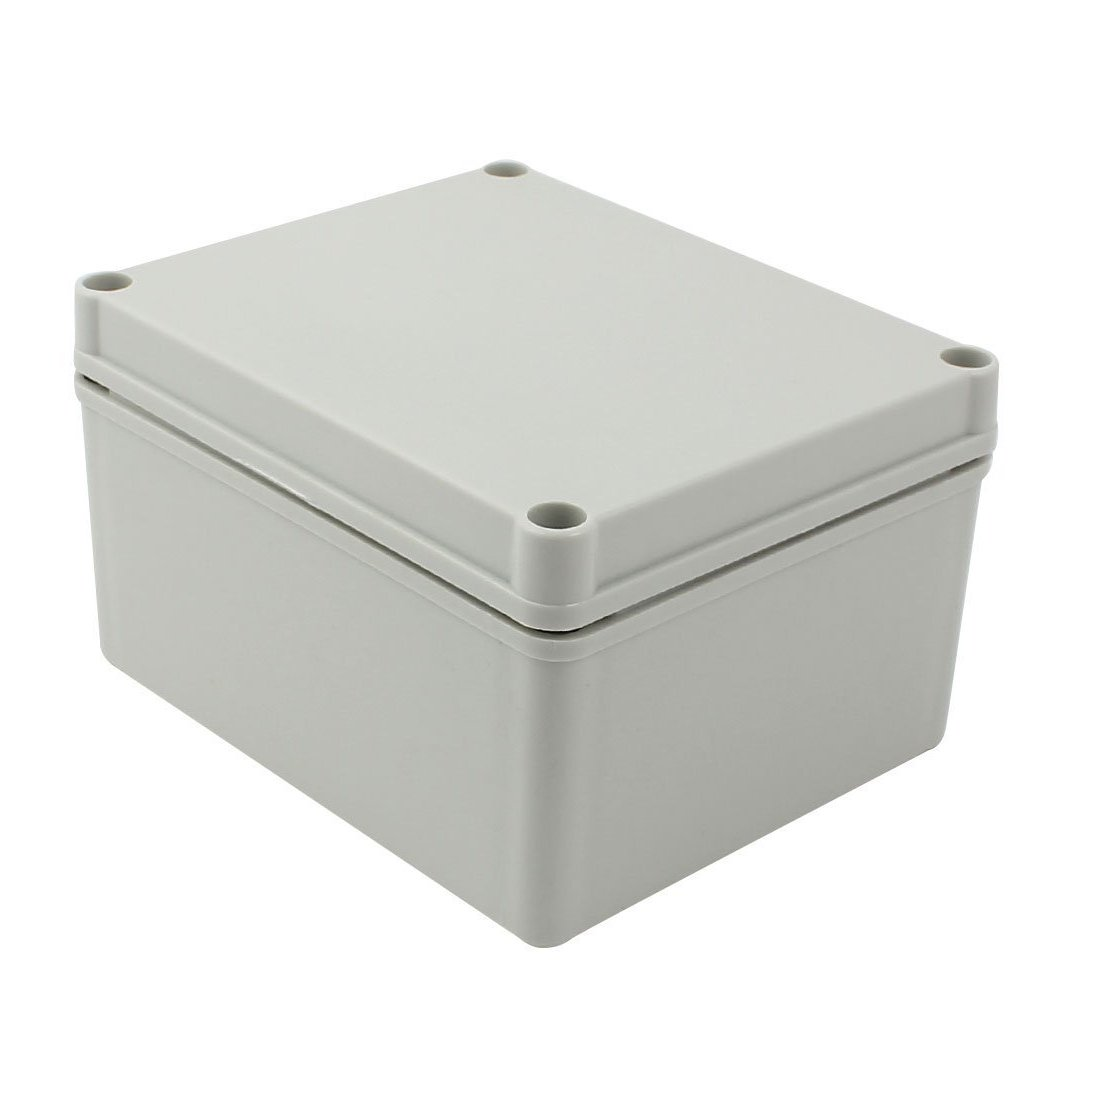 YXQ 170 x 140 x 95mm Electrical Project Case Junction Box IP65 Waterproof ABS DIY Power Outdoor Enclosure Grey (6.7 x 5.5 x 3.7 inches)